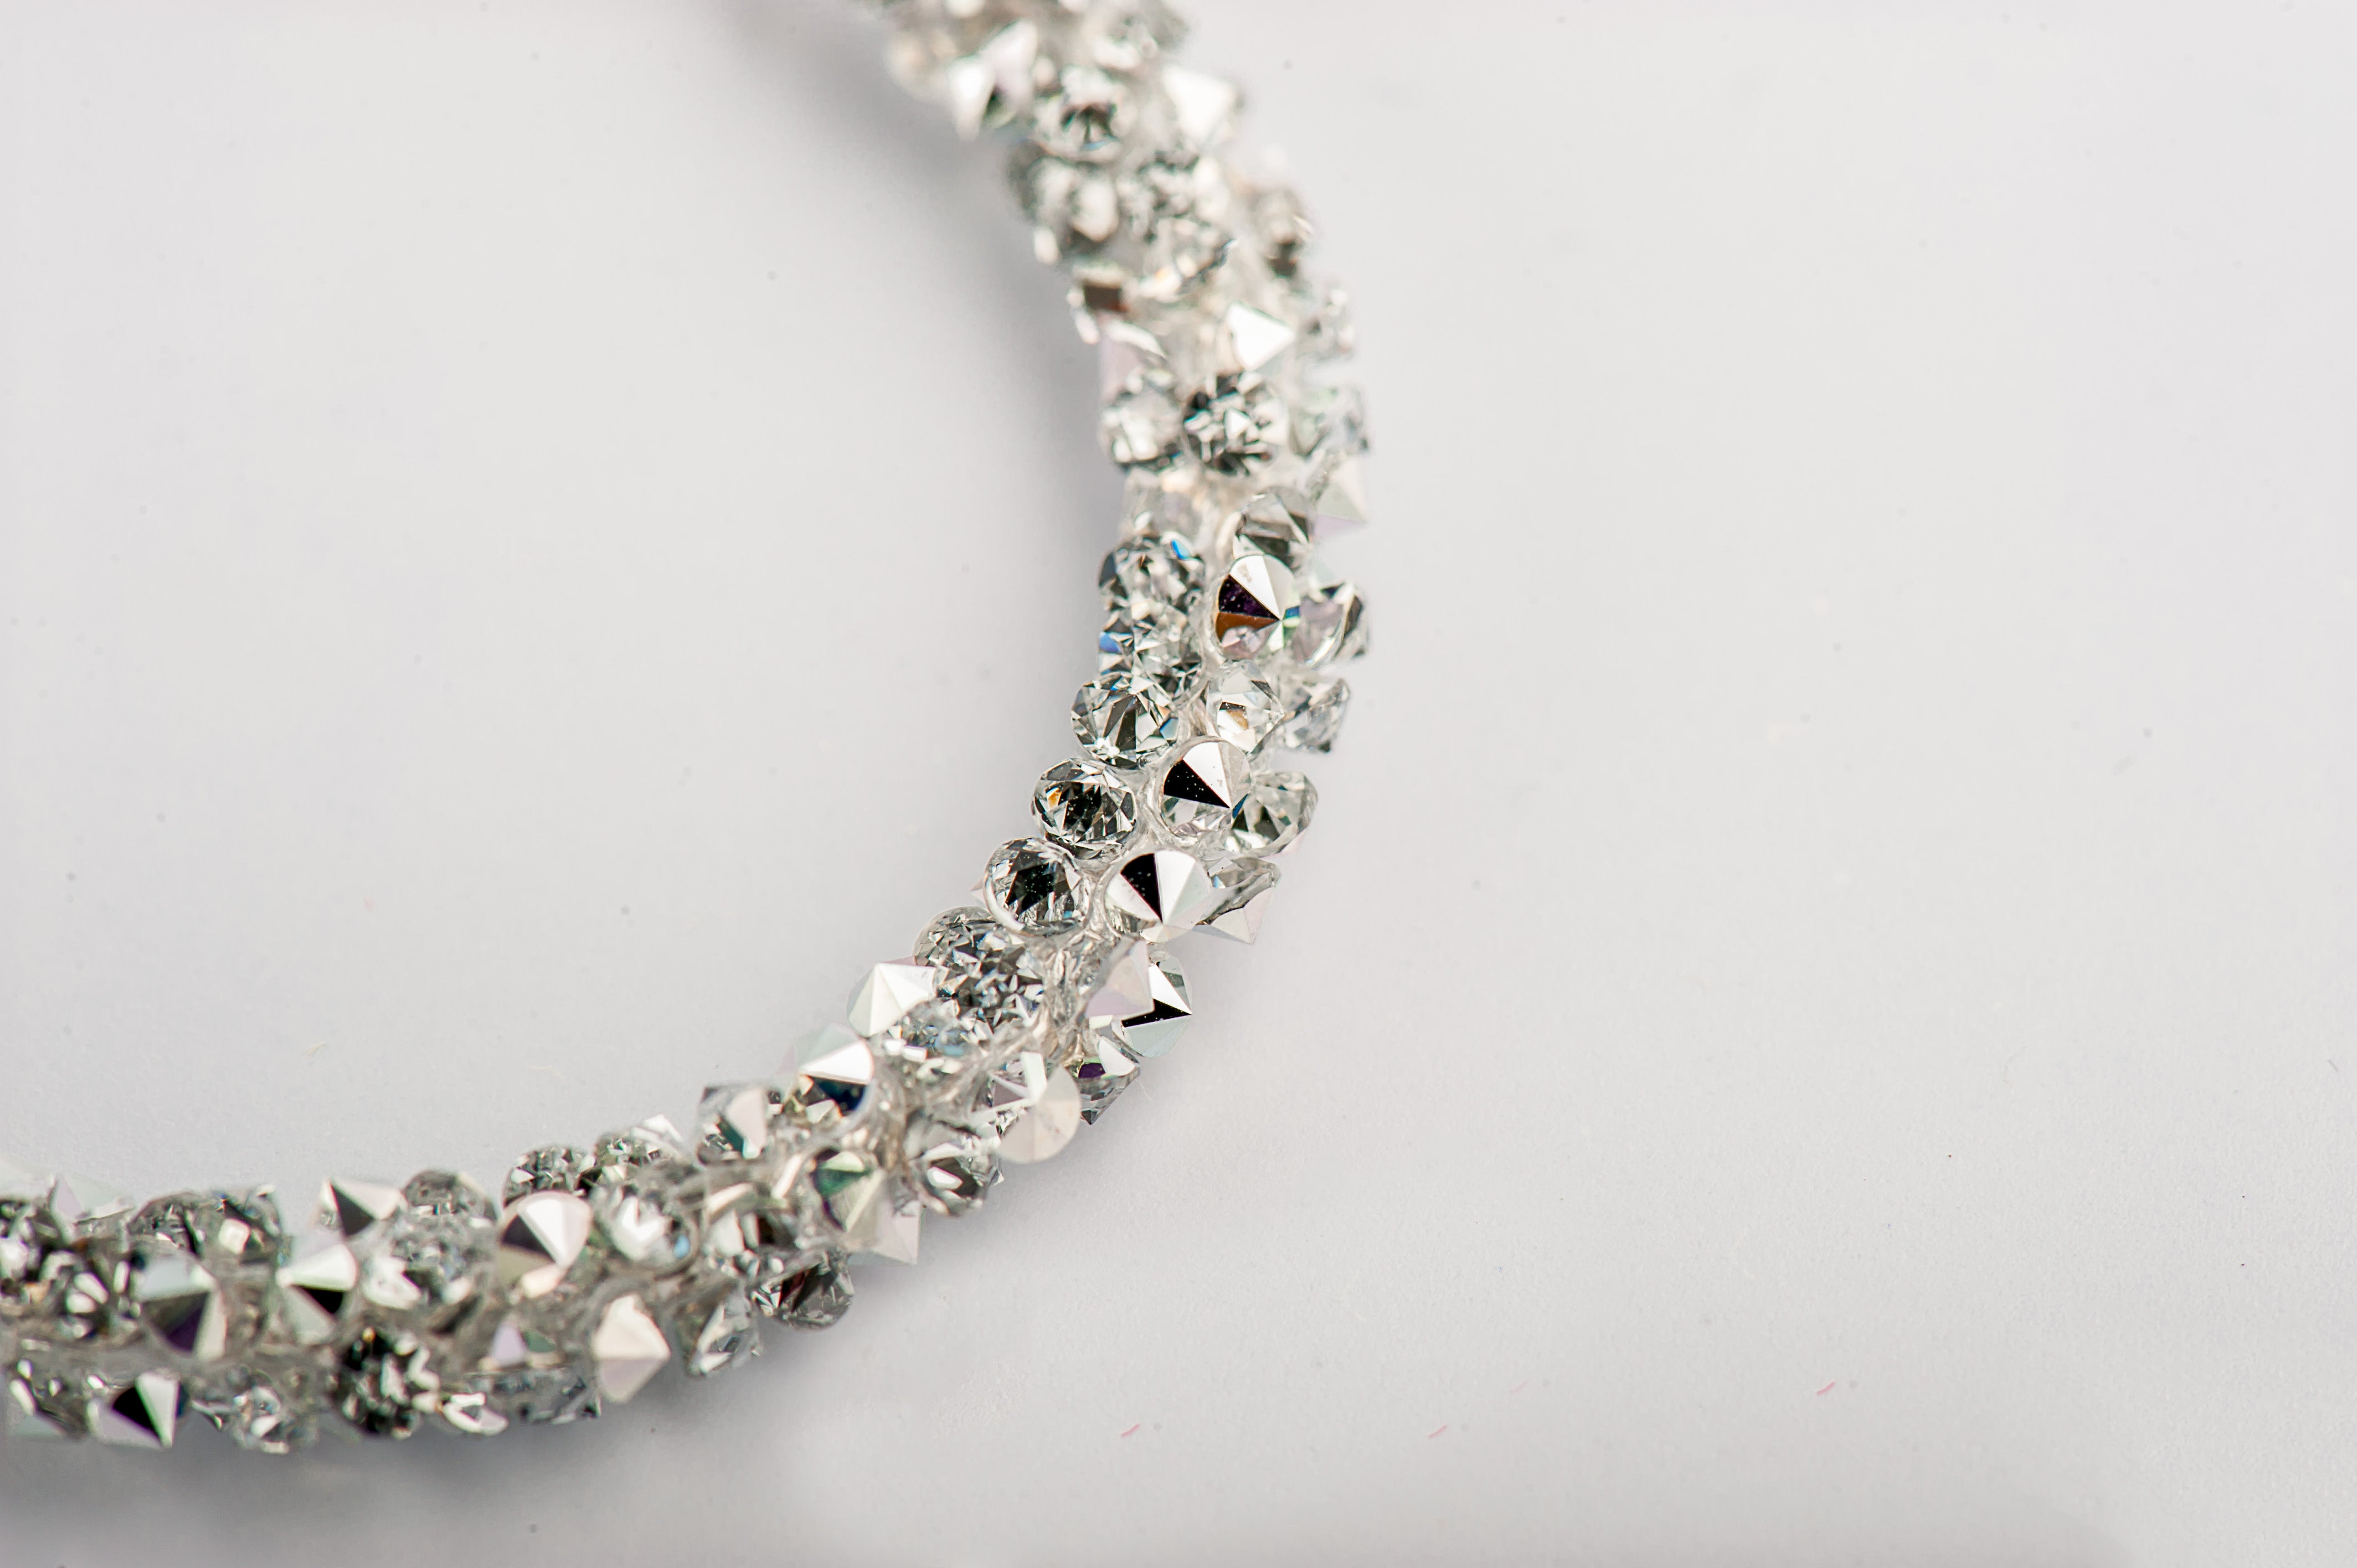 fashion accessories necklace with cubic zirconia american diamonds uk silver colier cu zirconii zirconiu